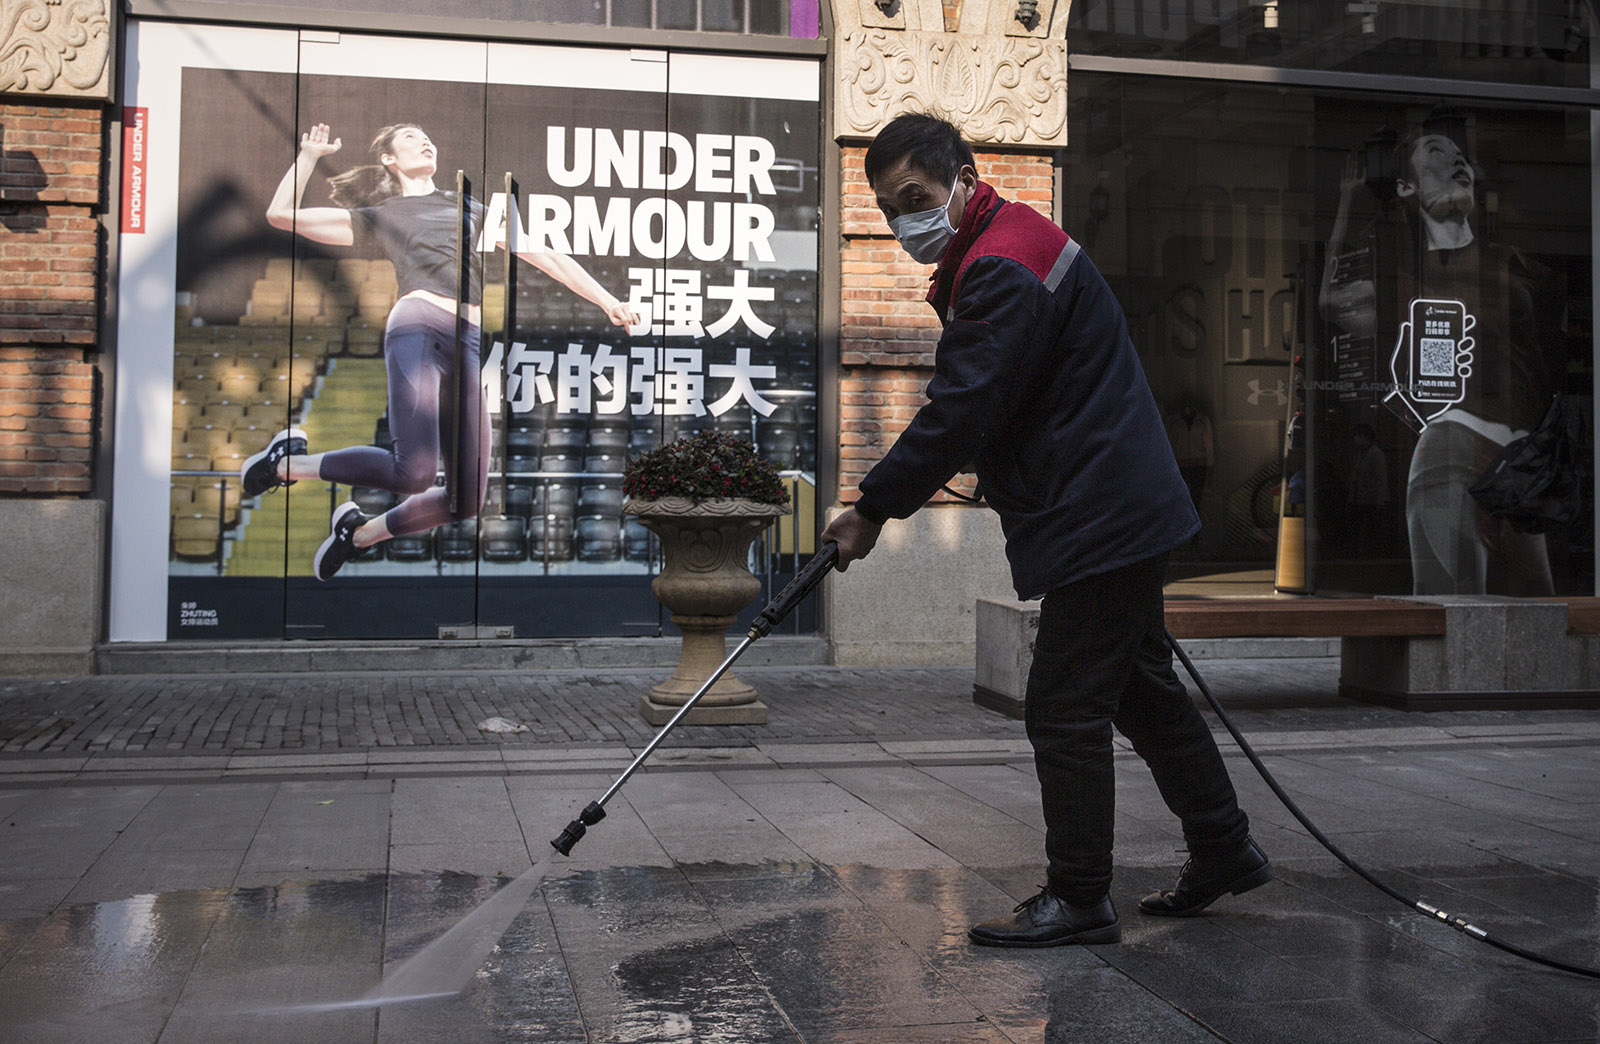 Street-cleaner washing pavement in Wuhan, China